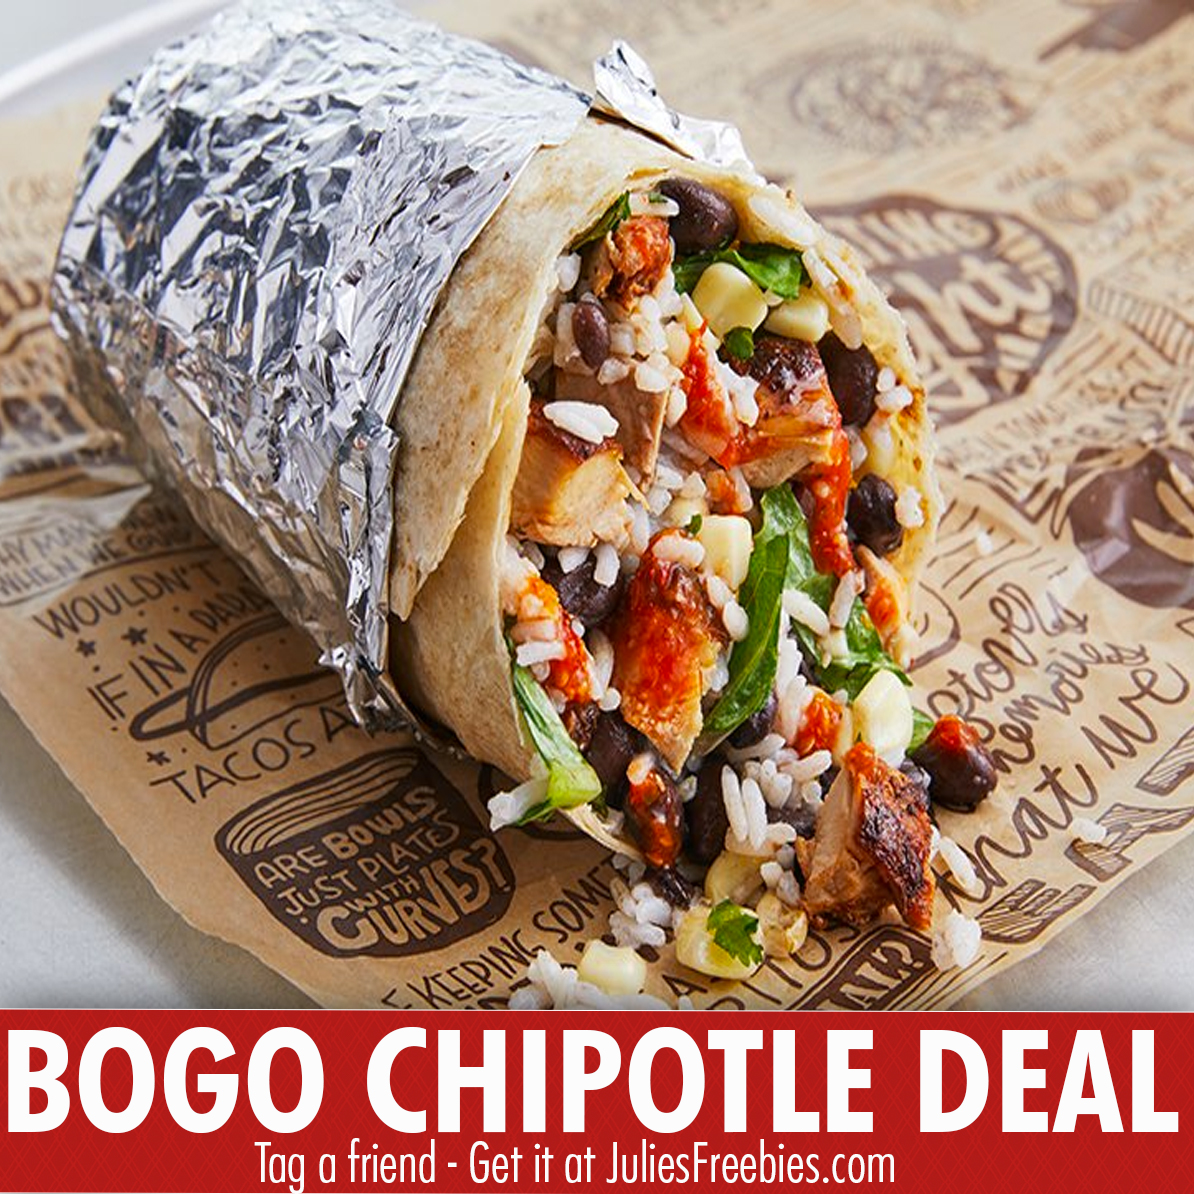 feb6b32c2 If so, you can stop by Chipotle on May 8, 2018, between 3pm – close, with  your faculty ID, and you can get 2 burritos, for the price of just 1!